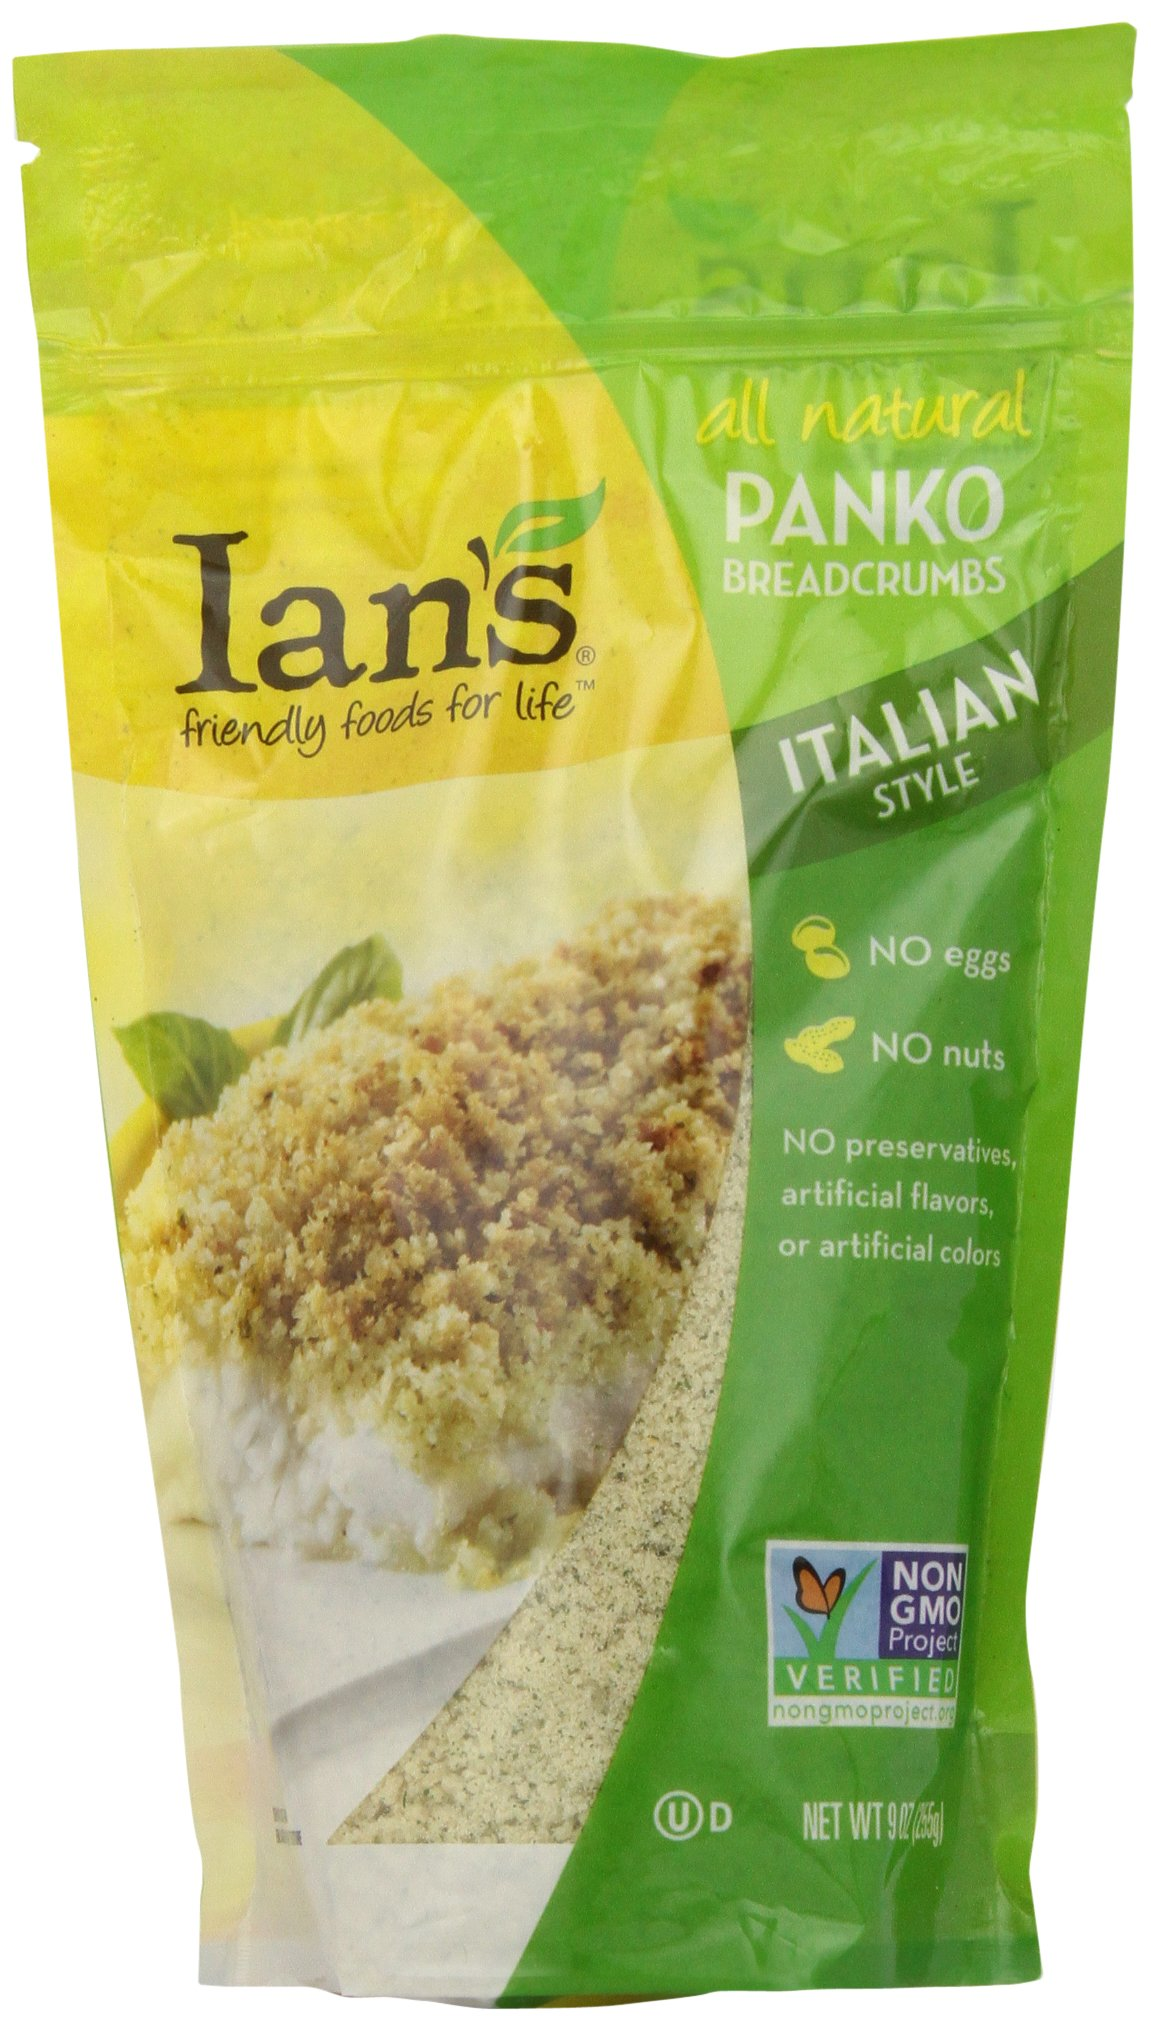 Ian's Italian Style Panko Breadcrumb, 9-Ounces (Pack of 12)